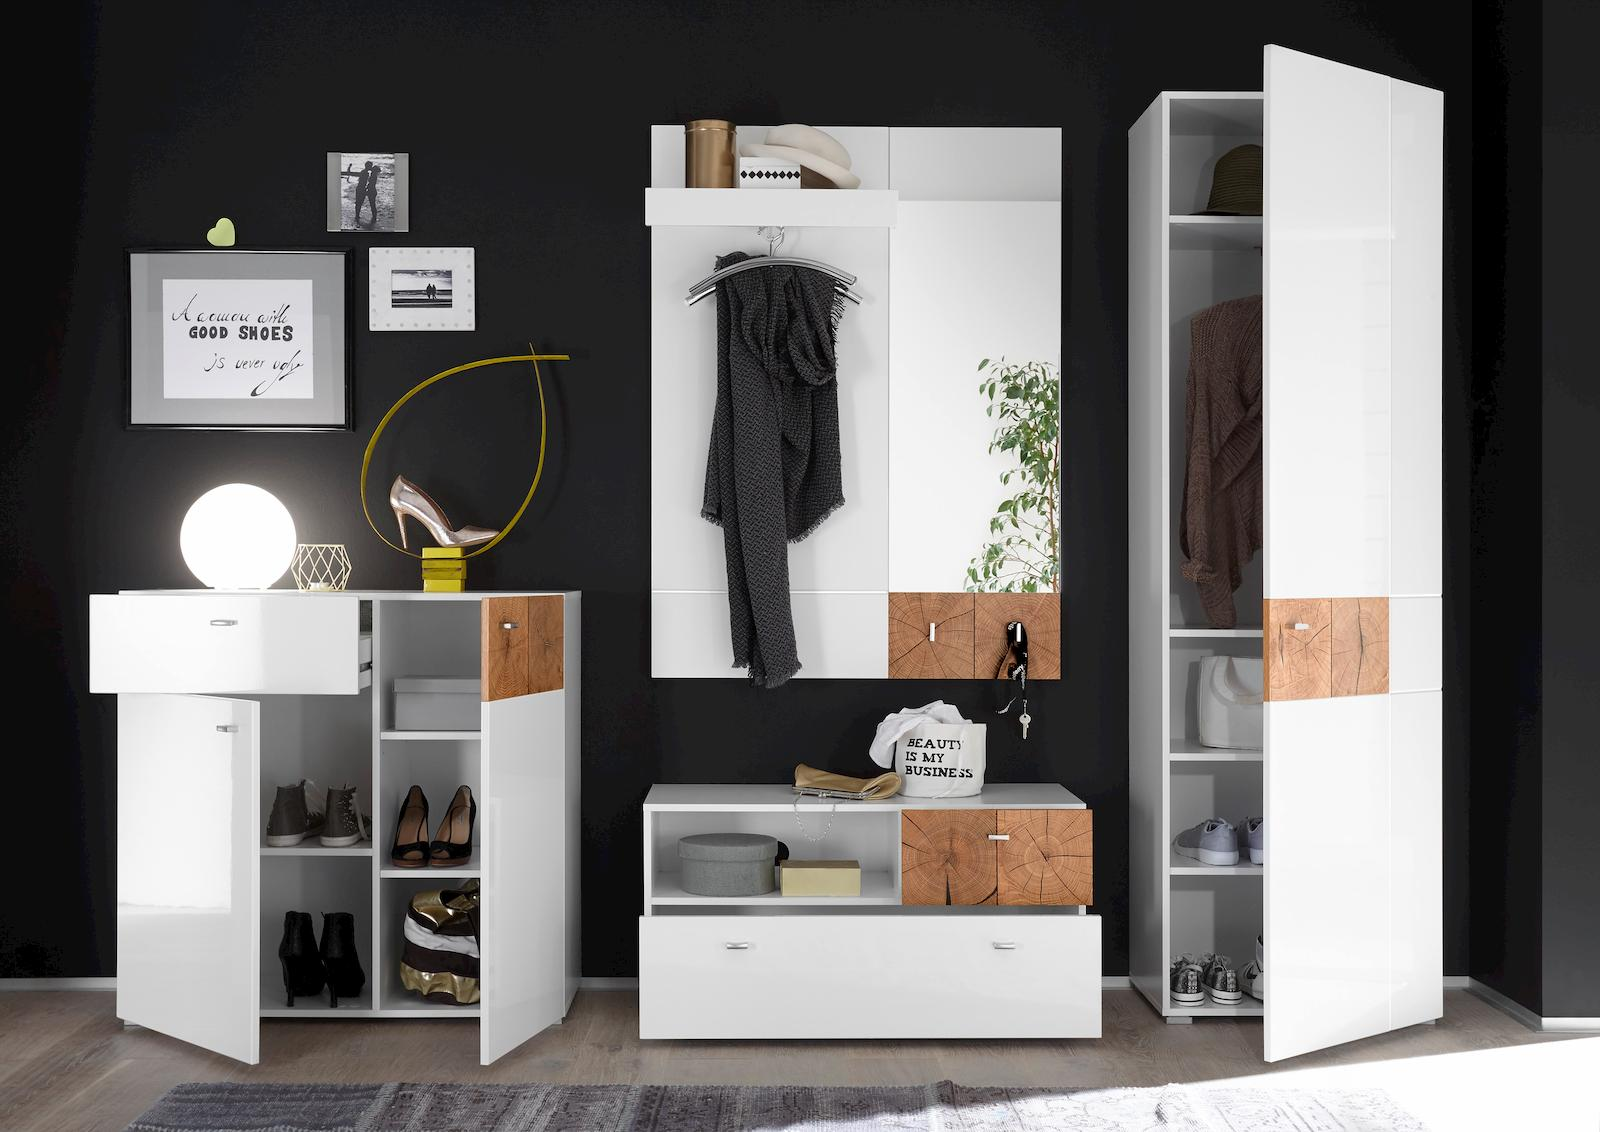 forest schuhbank bank sitzbank garderobe flur ablagebank wei hochglanz diele flur schuhb nke. Black Bedroom Furniture Sets. Home Design Ideas